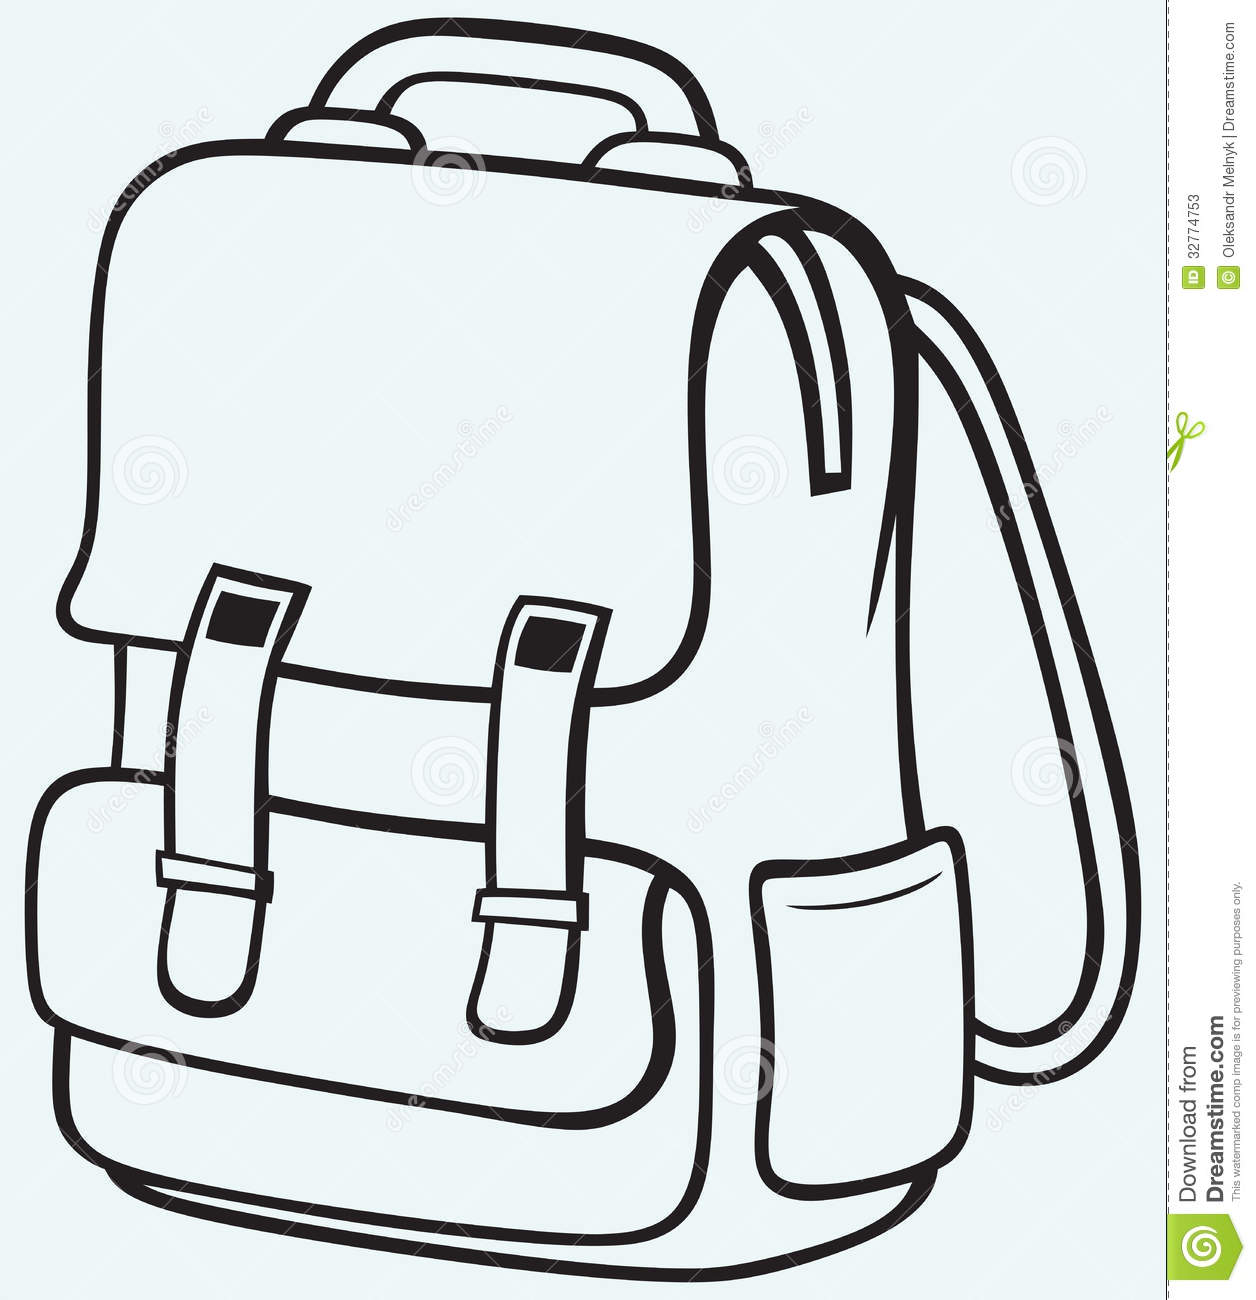 School bag clipart black and white 1 » Clipart Station.